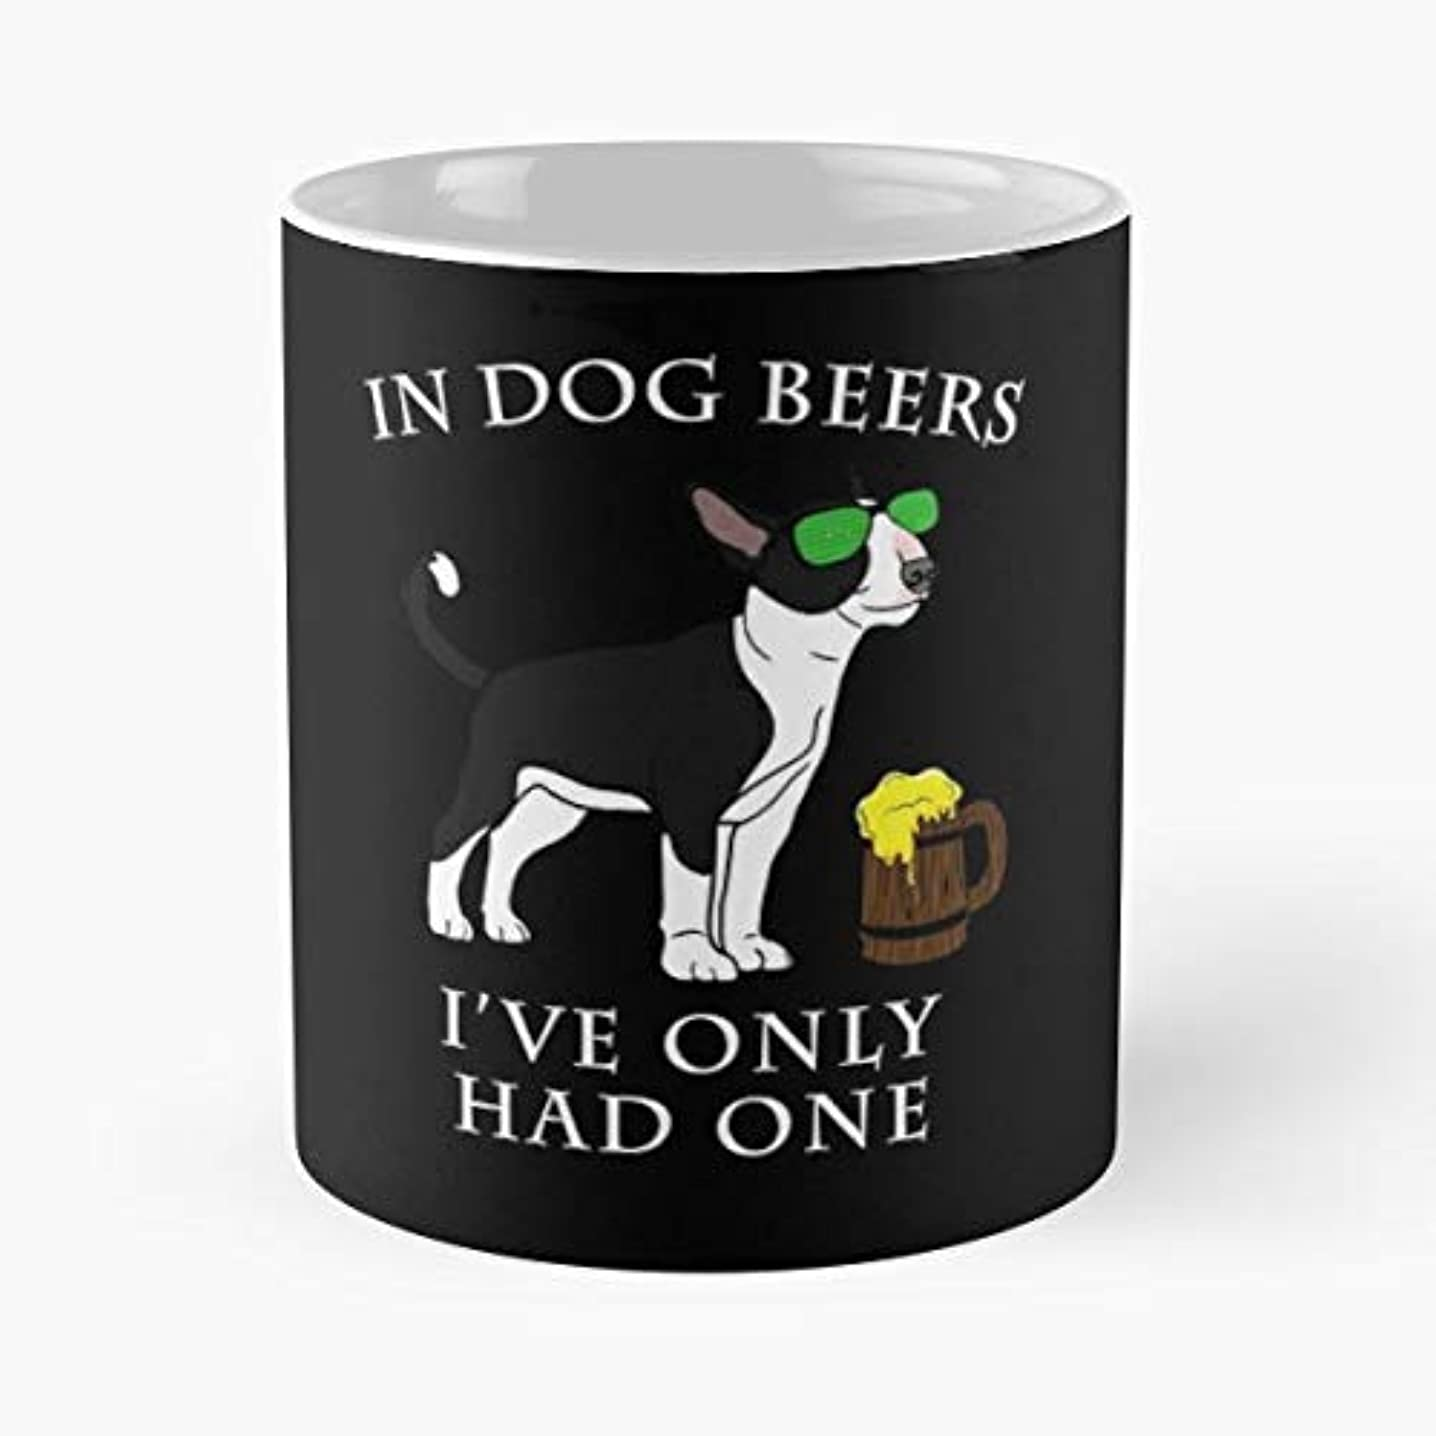 Pattys Party Green Ireland Bull Terrier Irish Dog Lover - Best Gift Coffee Mugs Unique Ceramic Novelty Cup